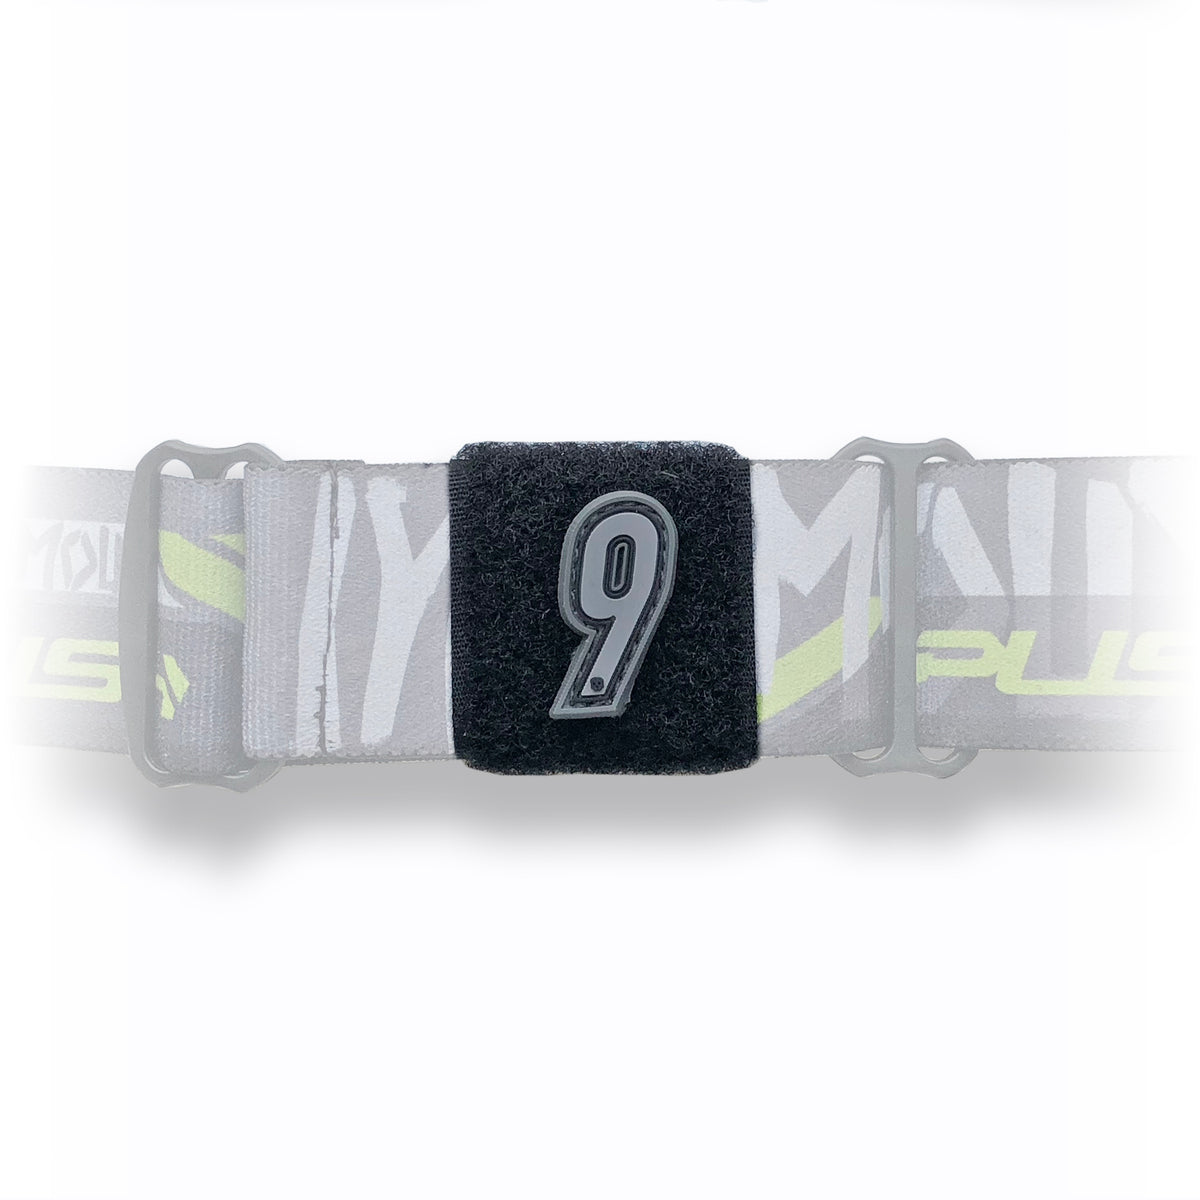 Number Patches - VOLT